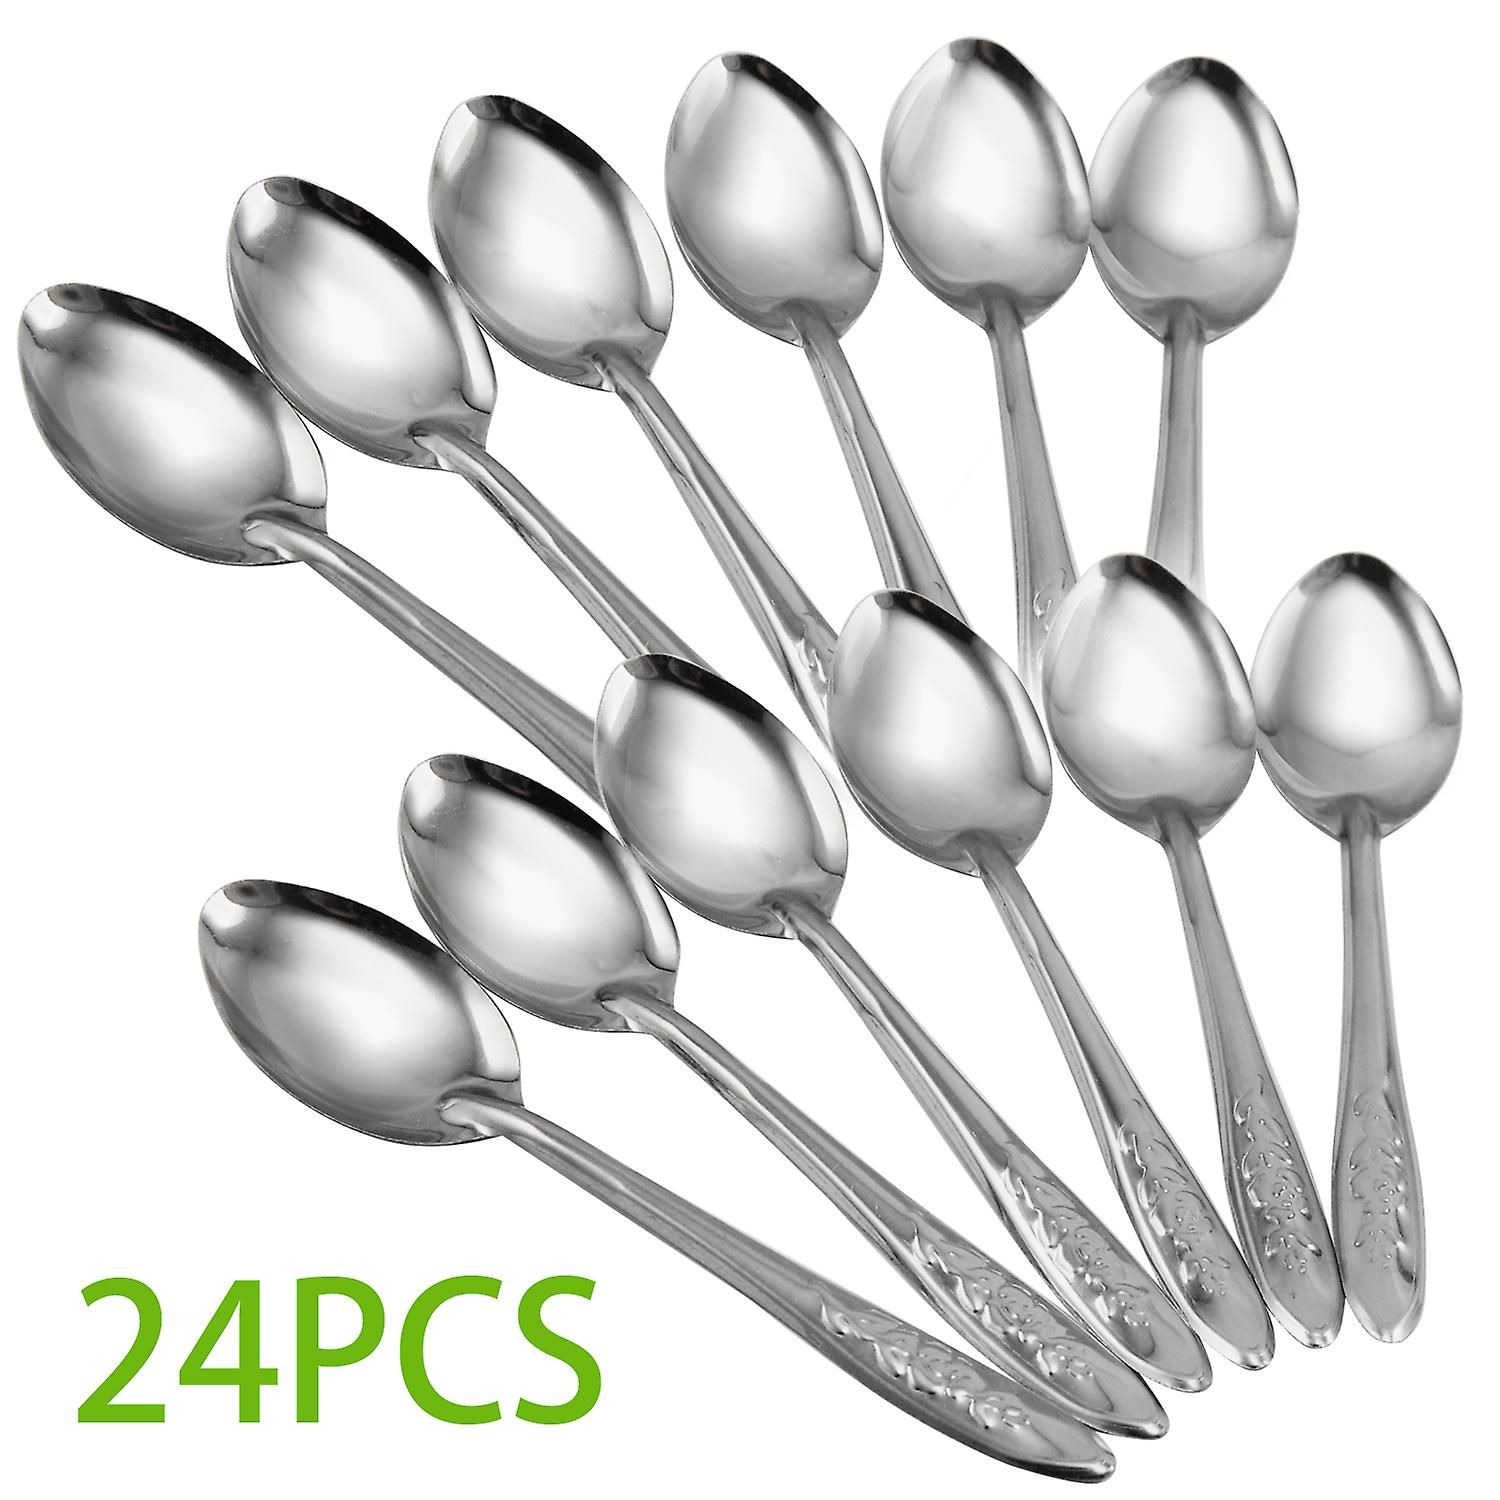 TRIXES Set of 24 Teaspoons Stainless Steel Travel Spoons